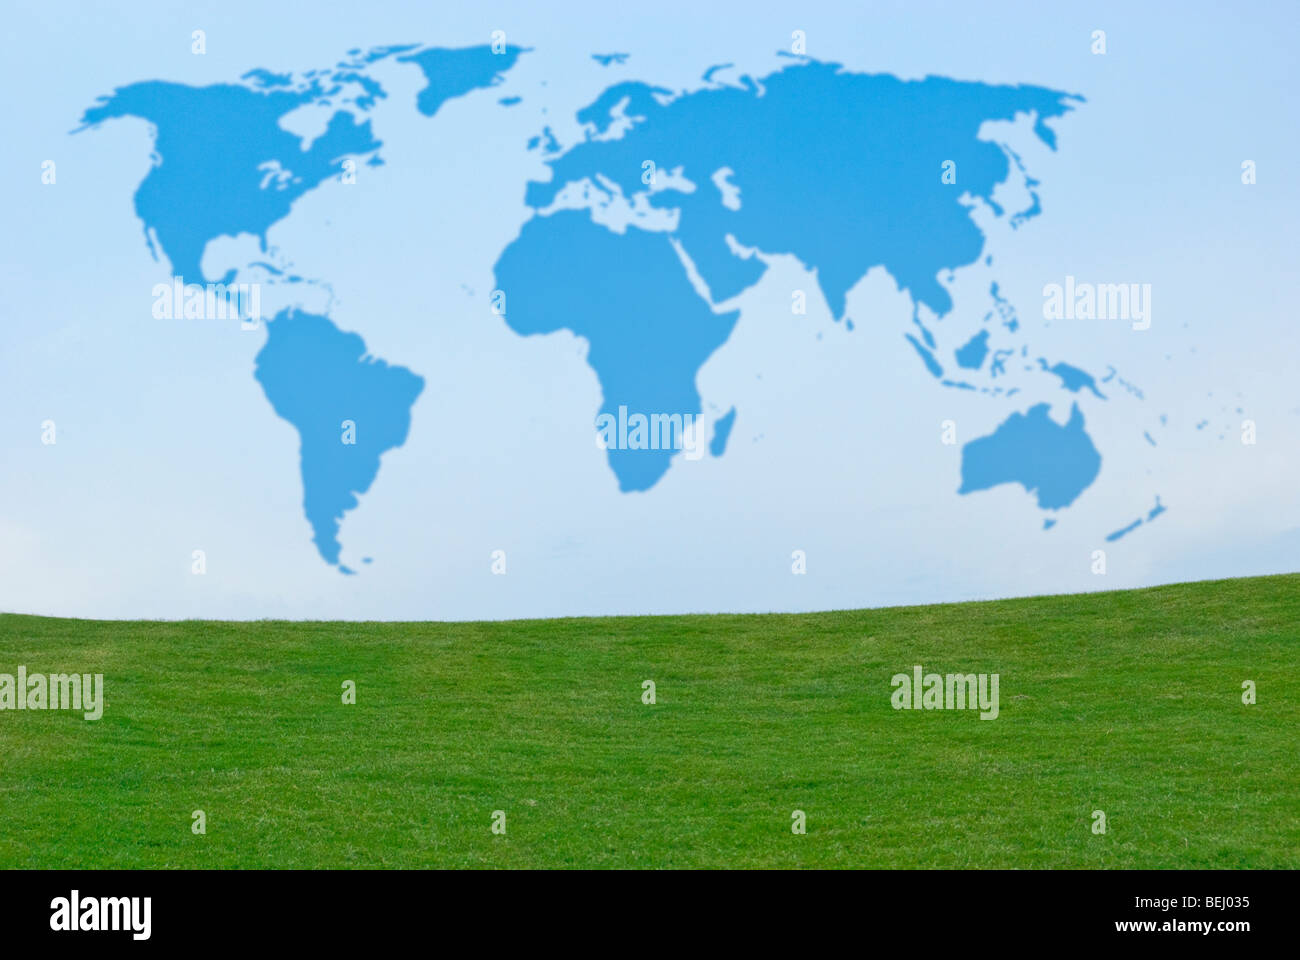 Outline of world map in blue sky above green grass - Stock Image